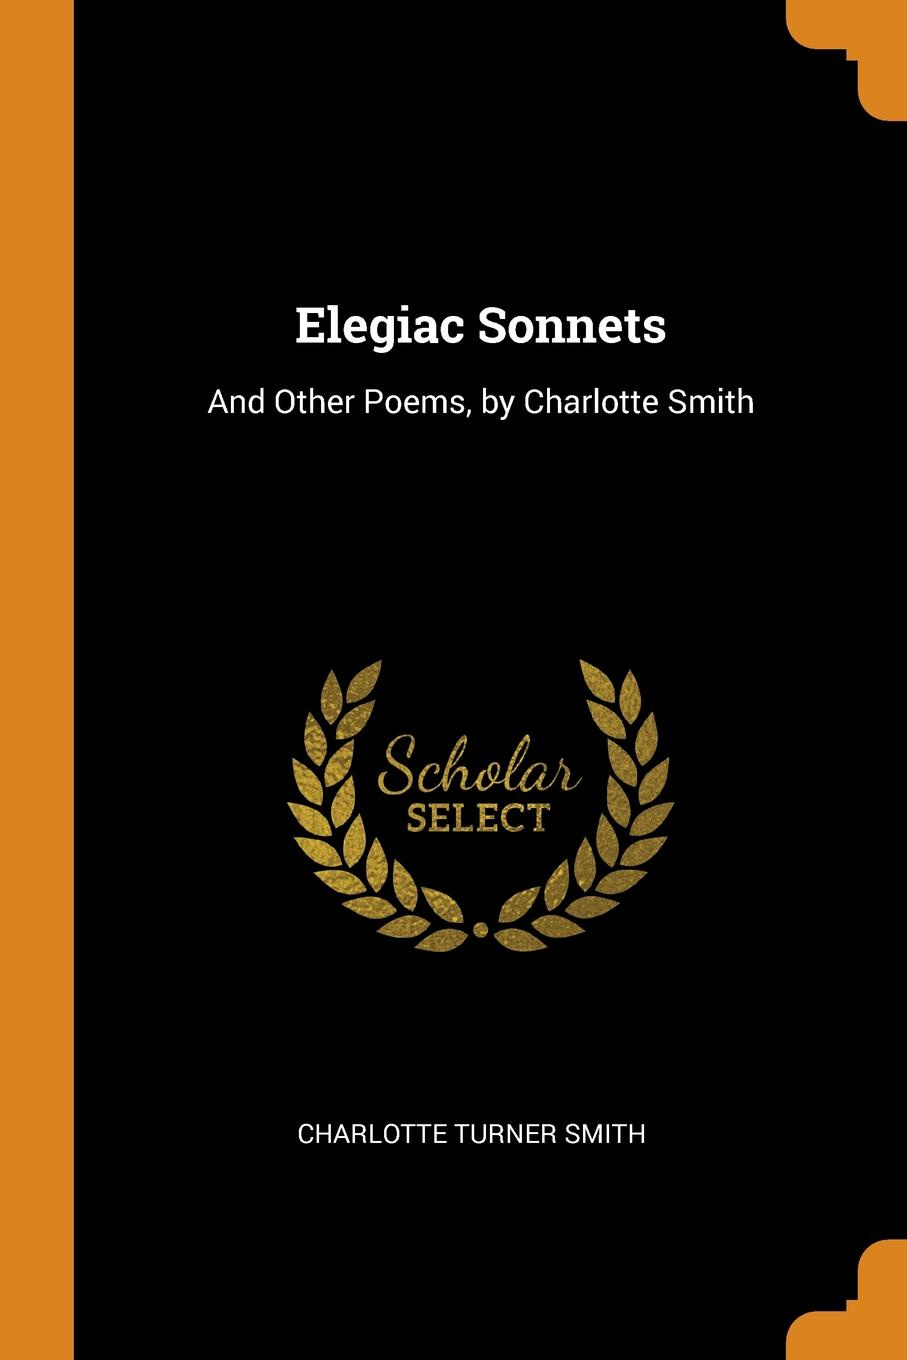 Charlotte Turner Smith Elegiac Sonnets. And Other Poems, by Charlotte Smith